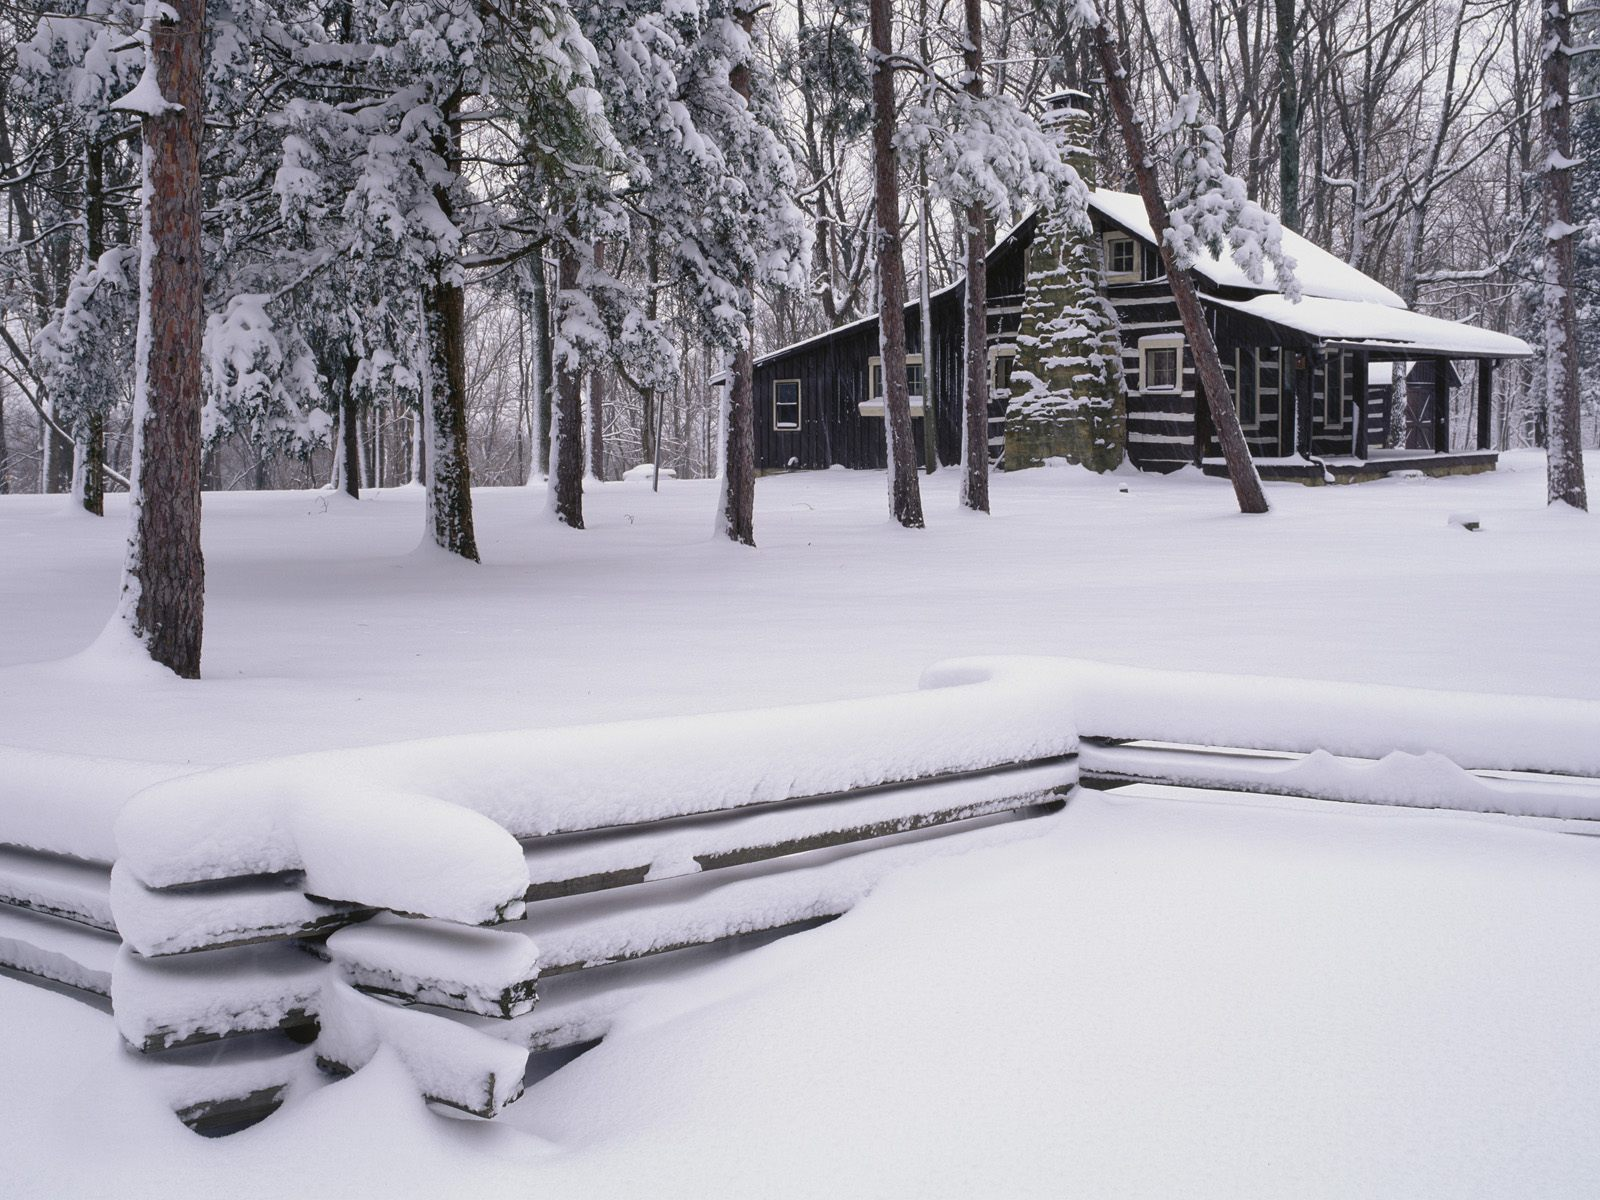 log cabin in the snow Wallpaper Background 38093 1600x1200